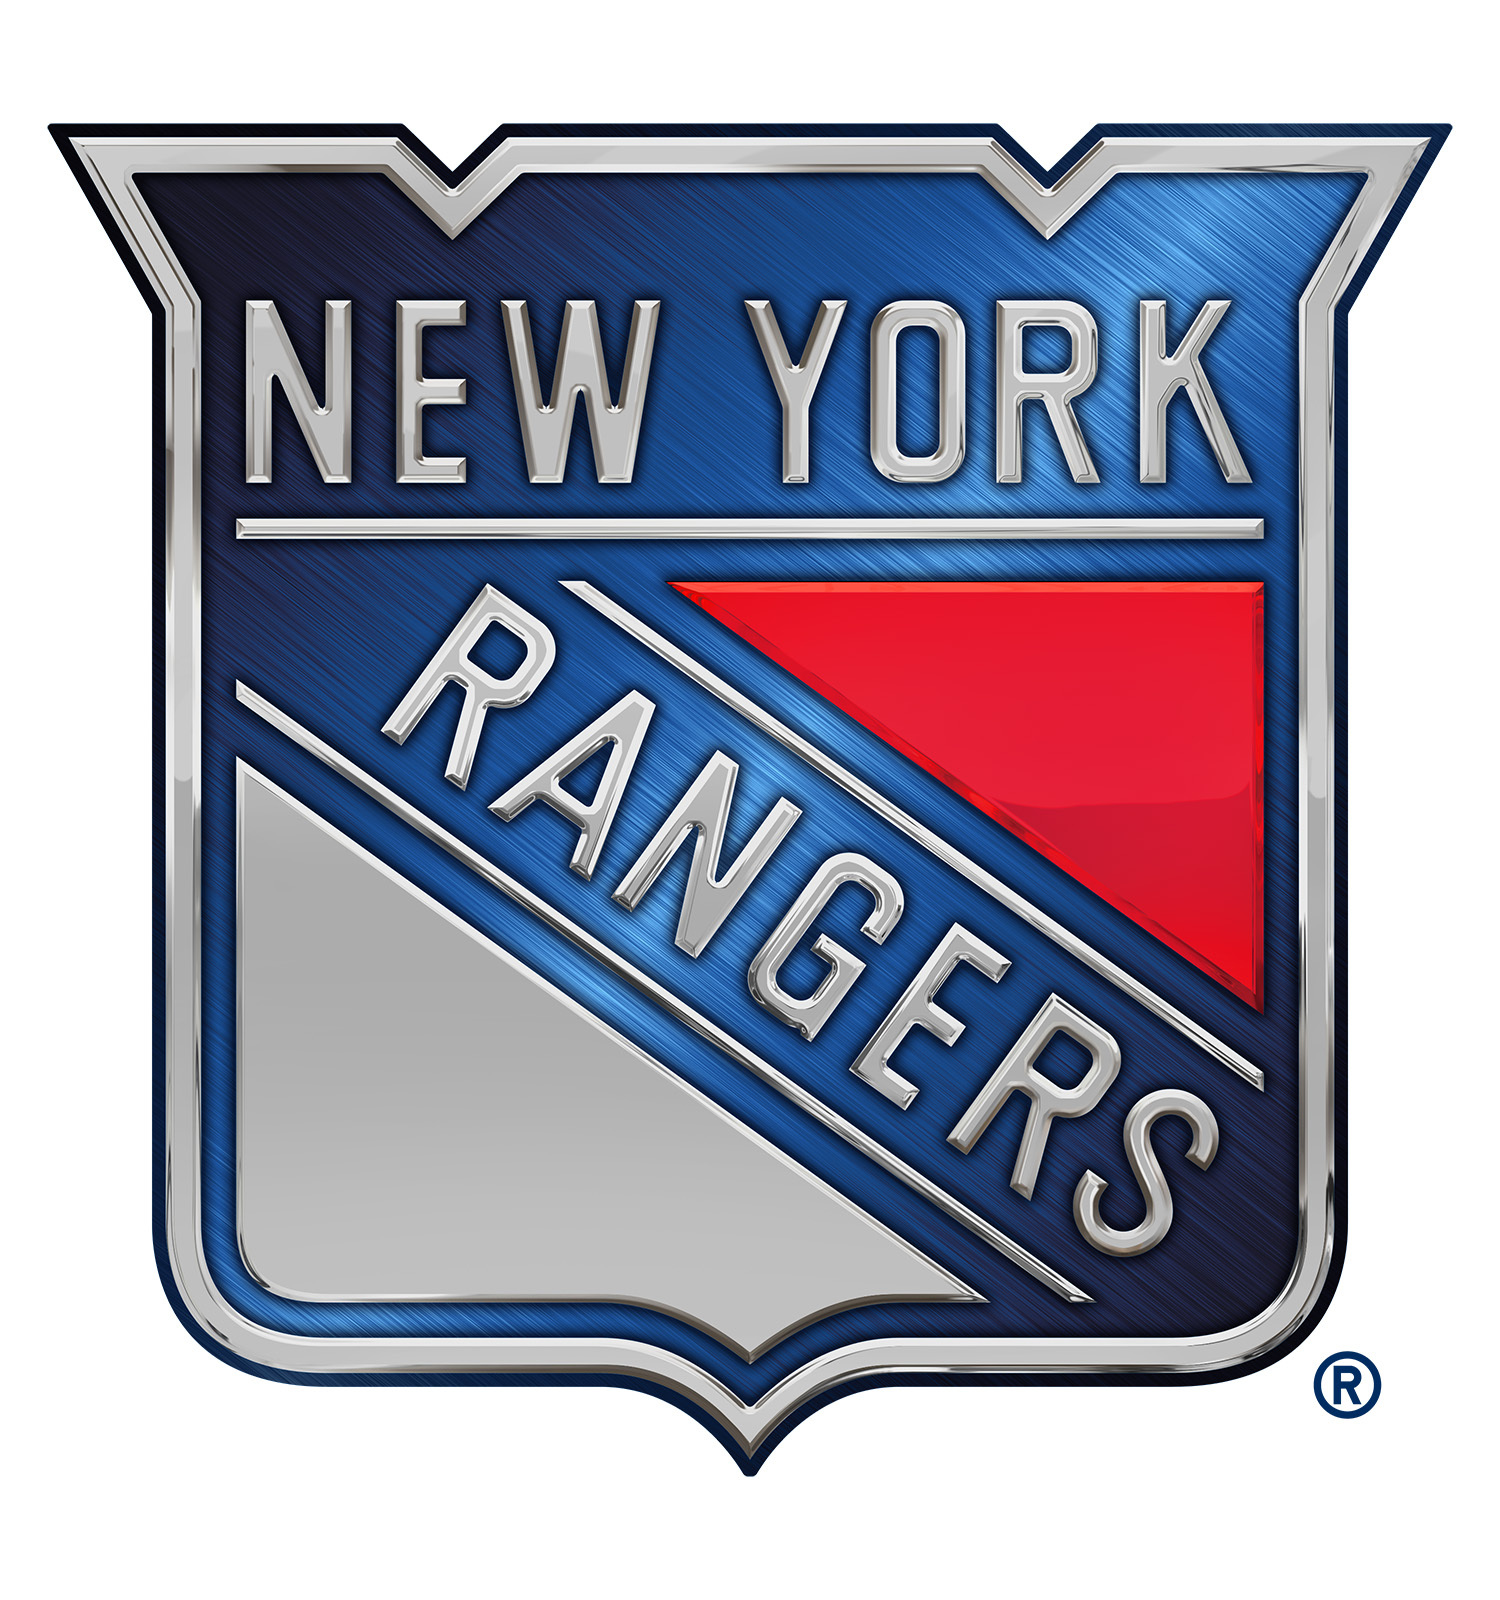 New York Rangers Schedule Wallpaper New York Rangers Fan